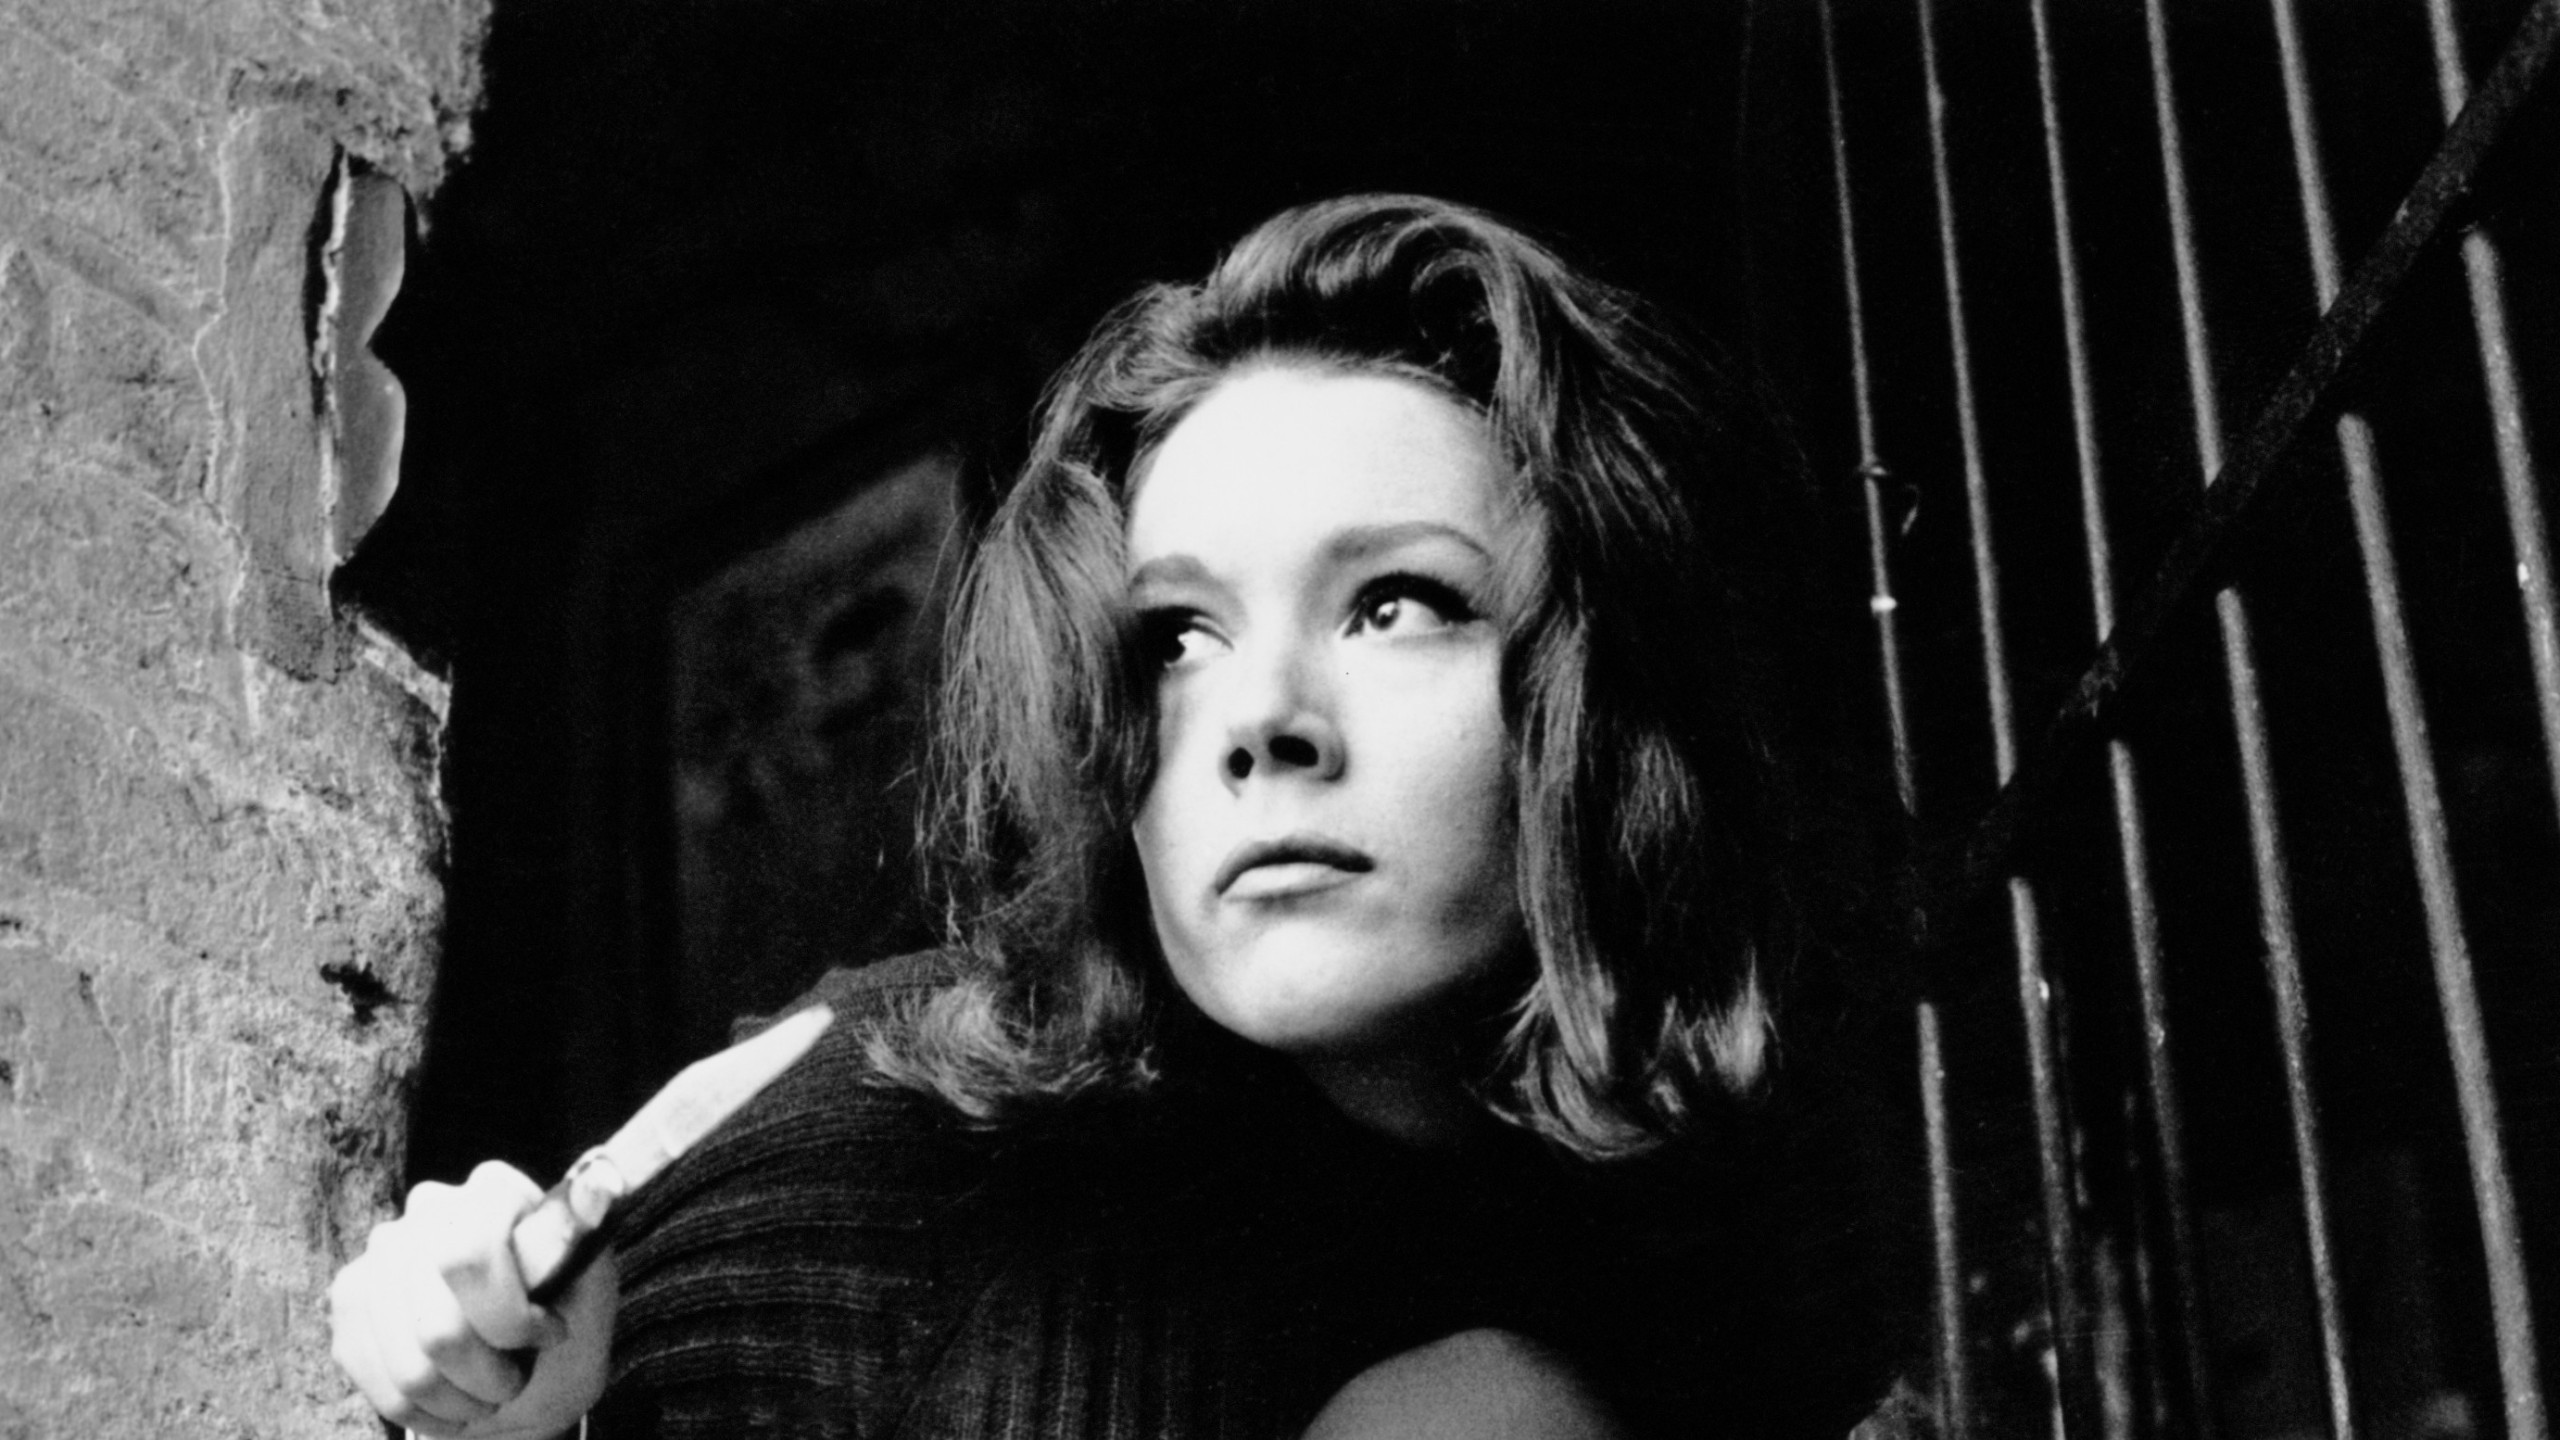 English actress Diana Rigg as Emma Peel in the television series 'The Avengers', 14th December 1964. (Terry Disney/Express/Getty Images)